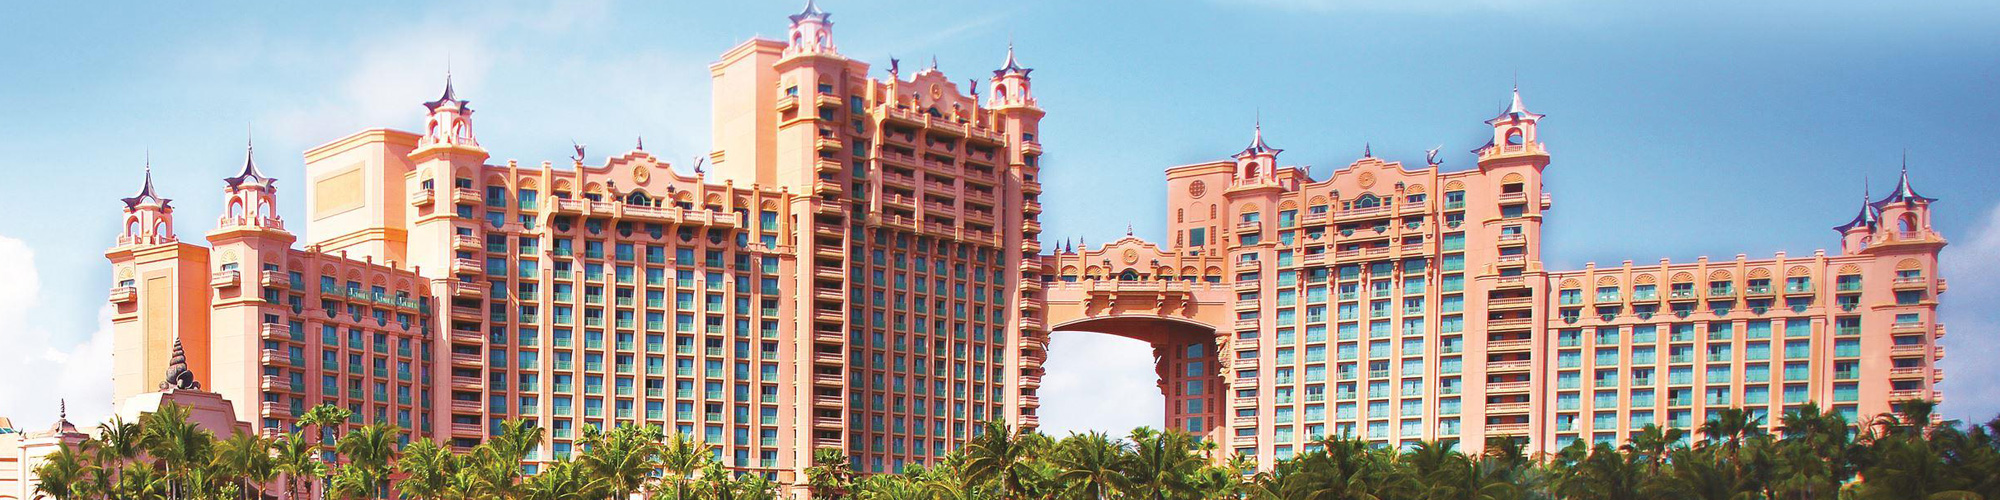 Select Atlantis hotels